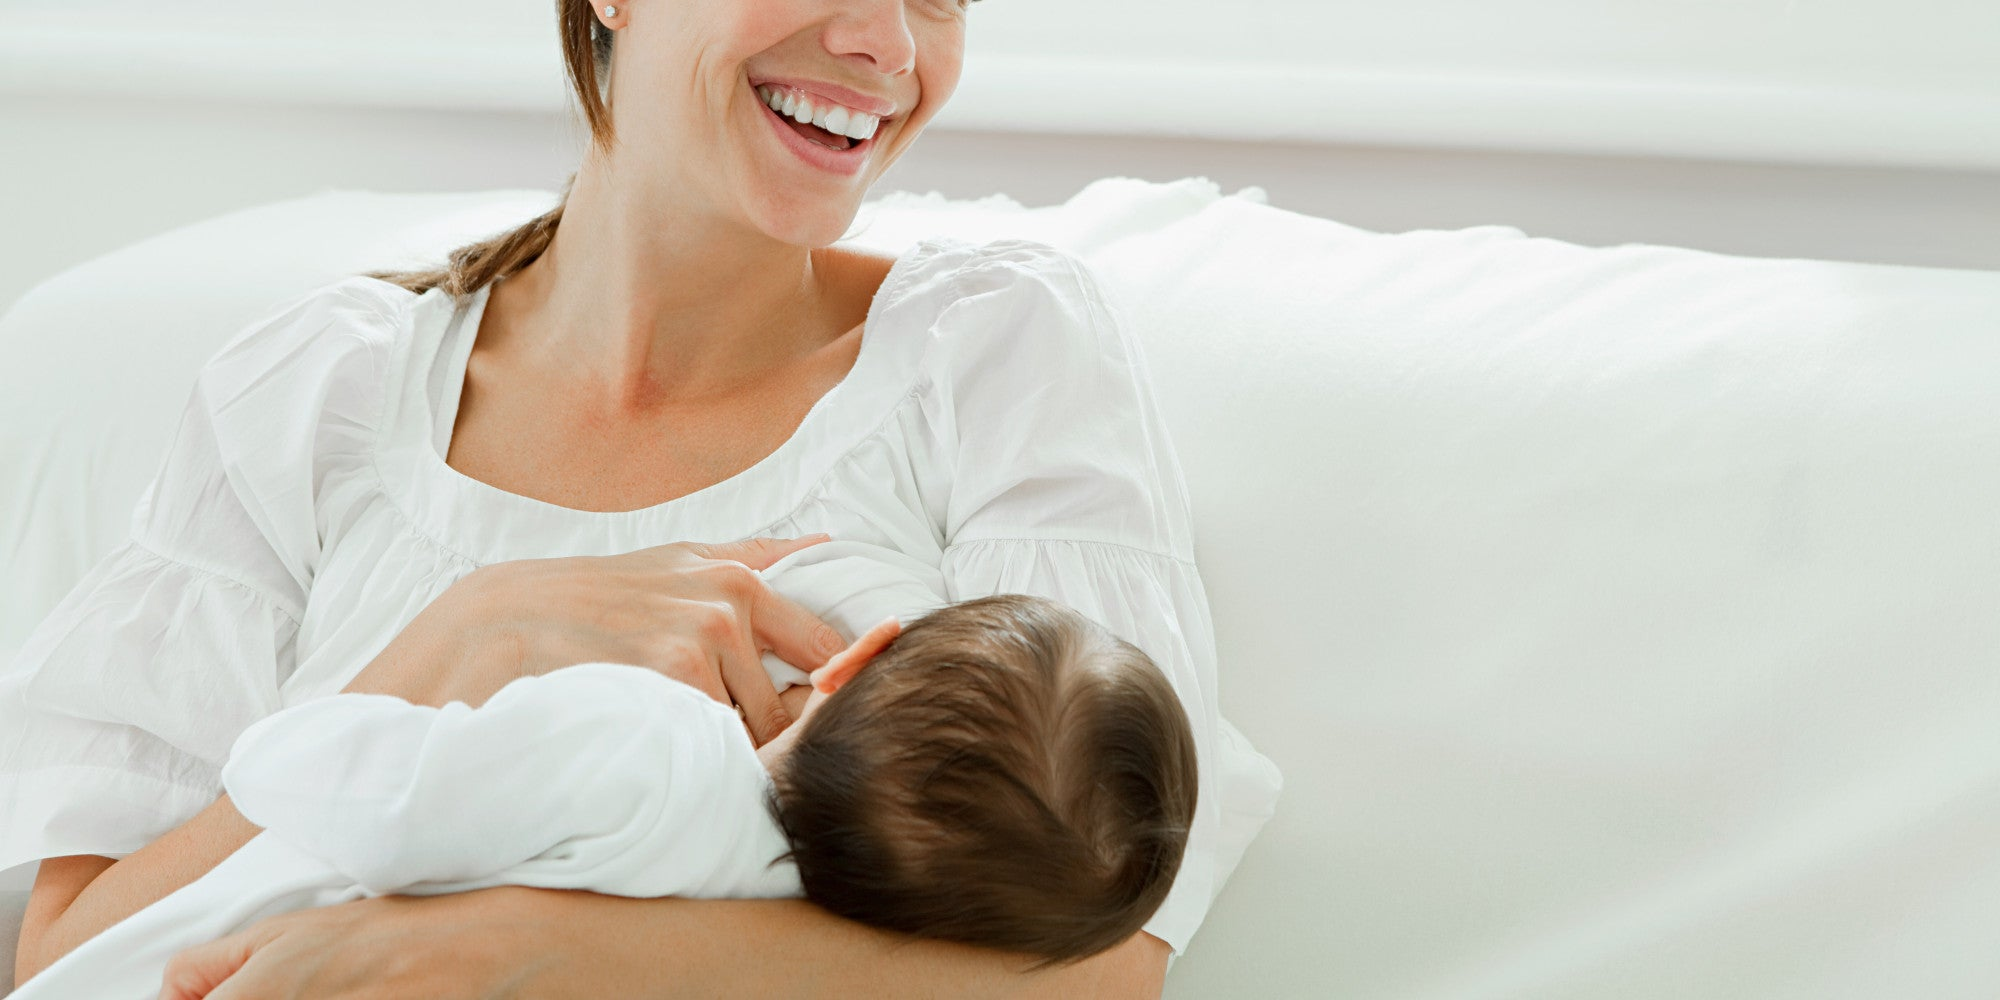 Person, Breastfeeding Problems And Solutions